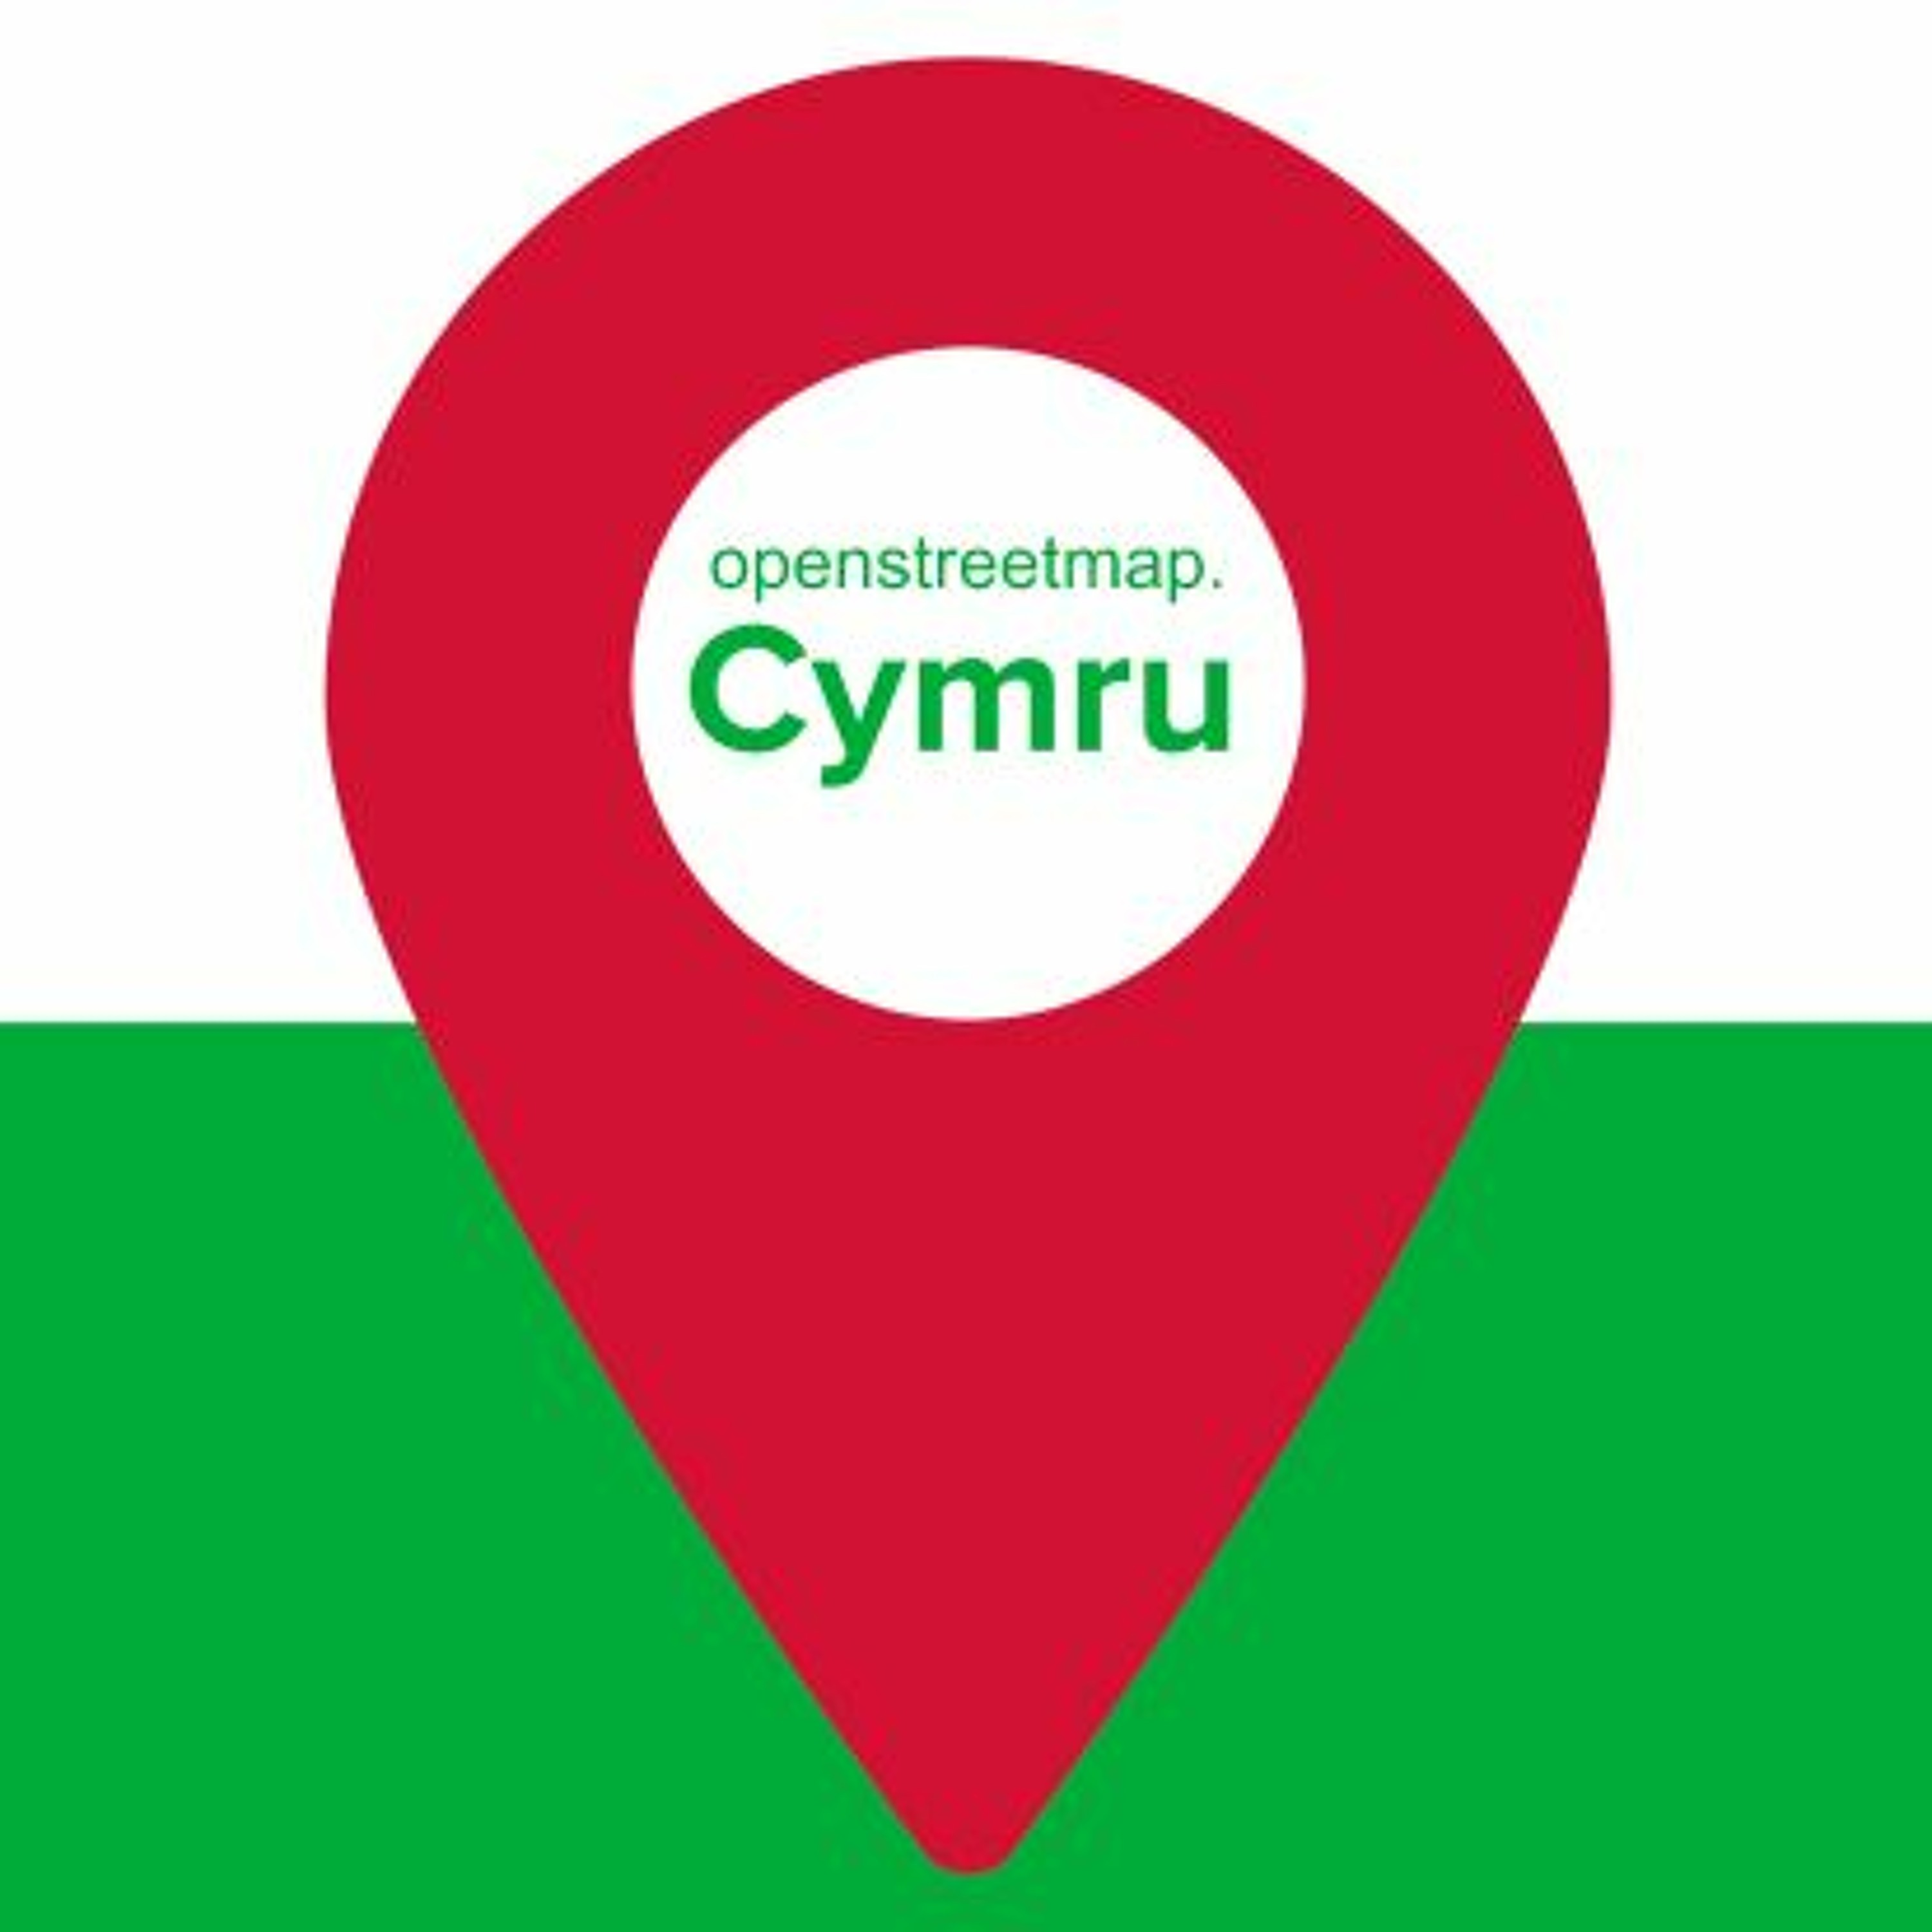 Mapio Cymru. Discussing the project to improve Welsh language mapping services